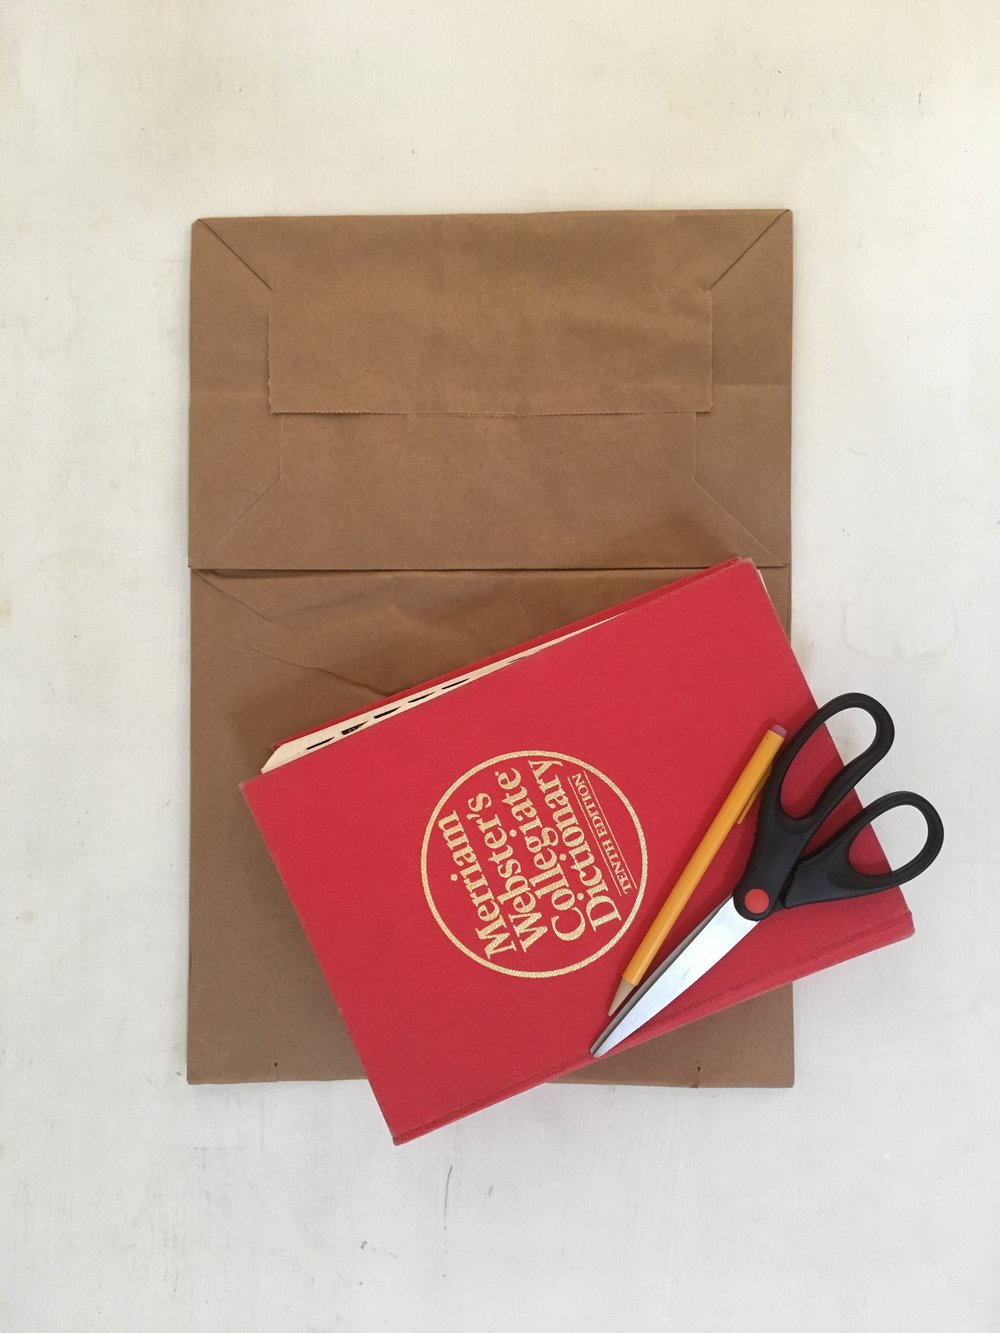 How To Make A Book Cover Out Of A Paper Bag ~ How to make a book cover from a paper grocery sack. u2014 ross & wallace